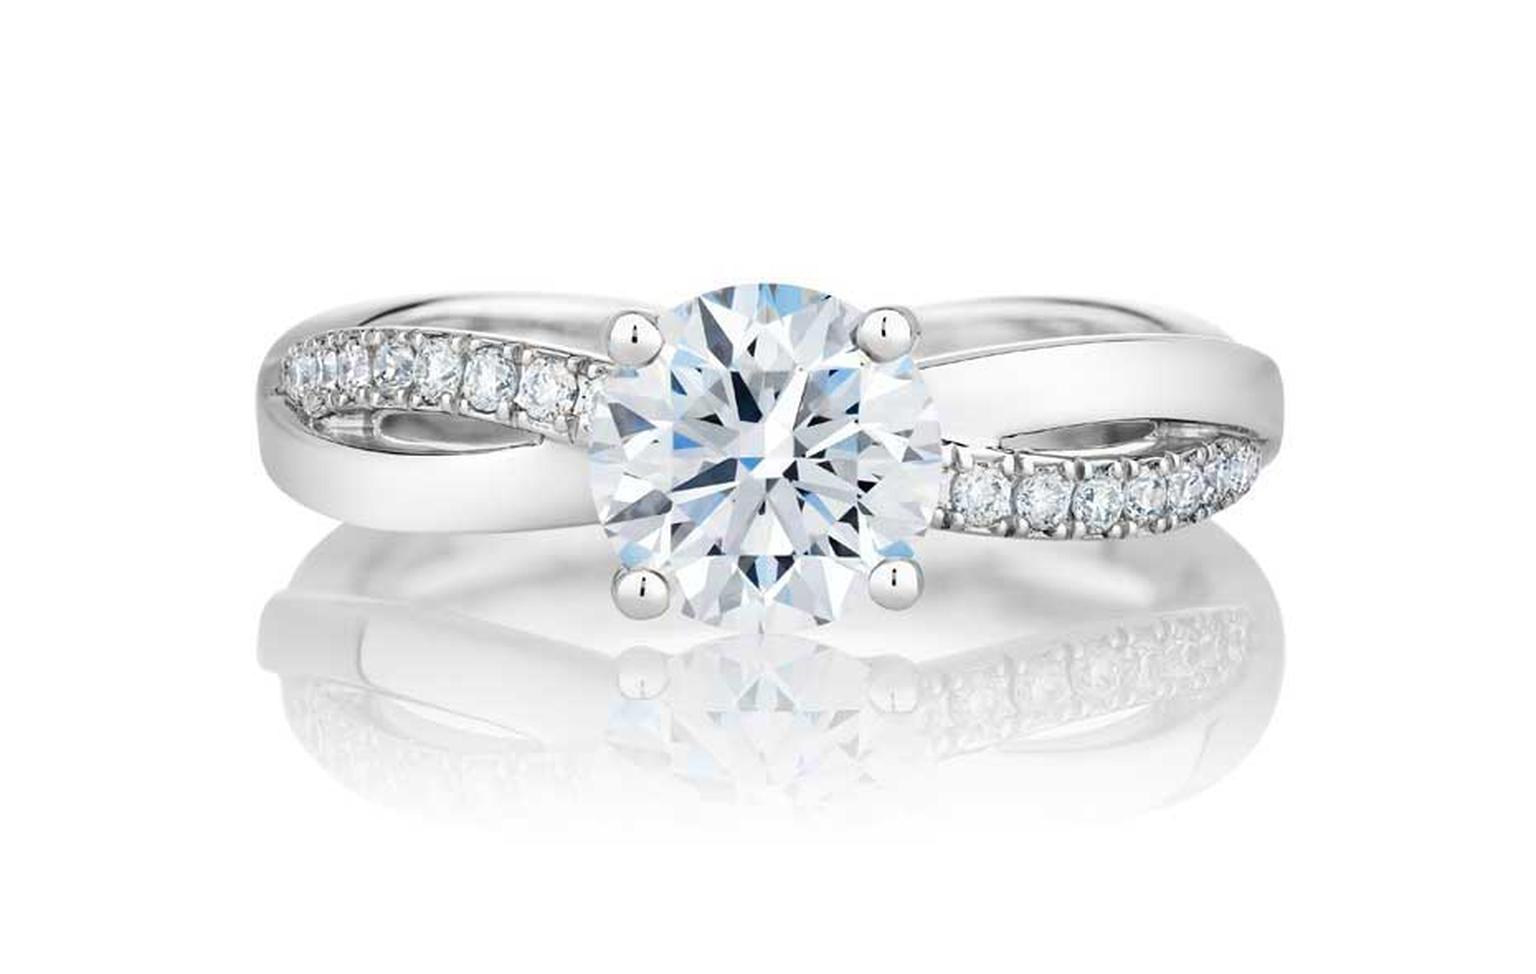 The Infinity Latest De Beers Engagement Ring Feature A Gently Curved Figure